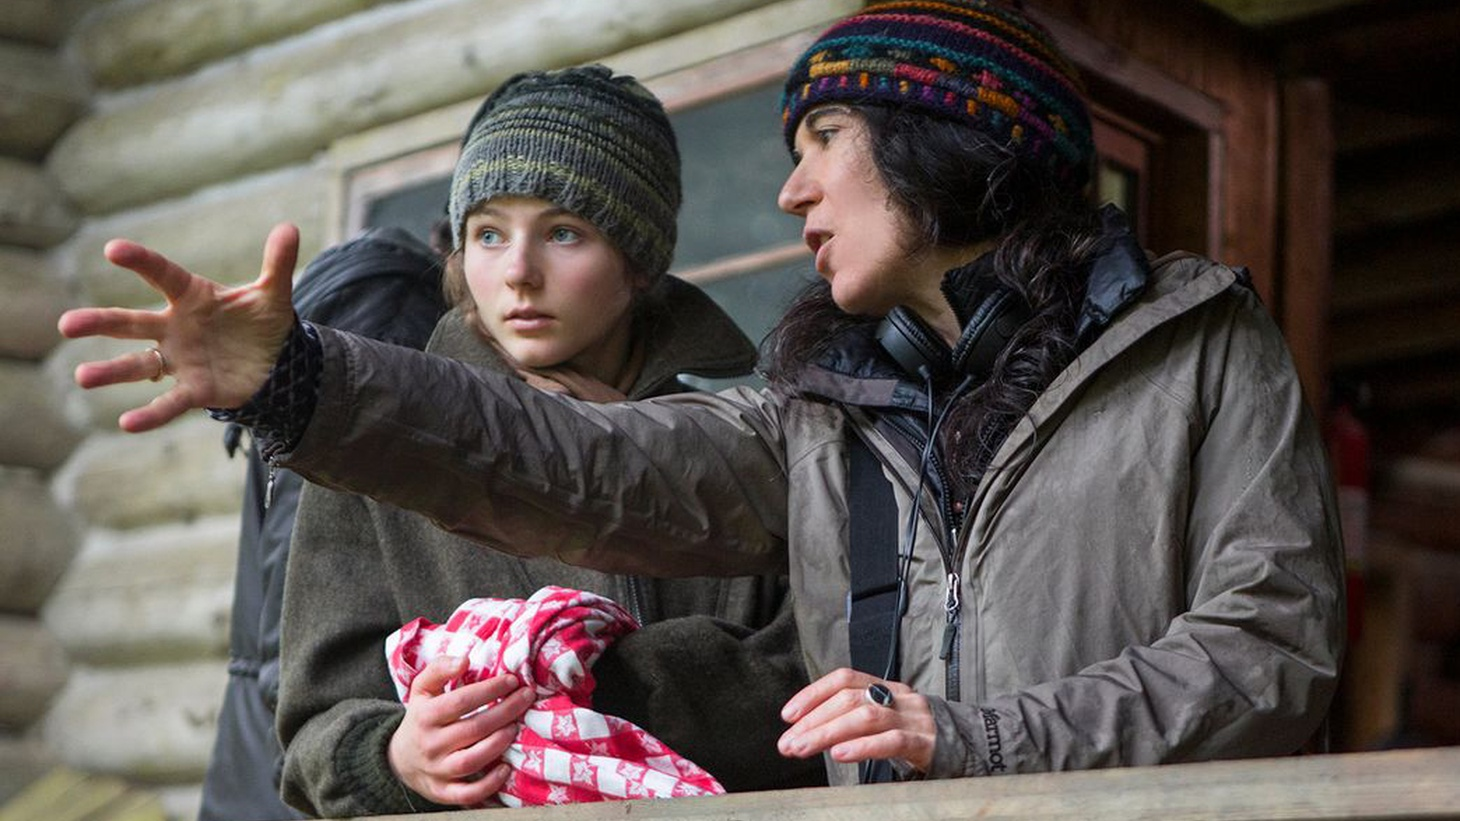 Debra Granik's new movie, 'Leave No Trace' follows a father and daughter living completely off the grid, in the woods.